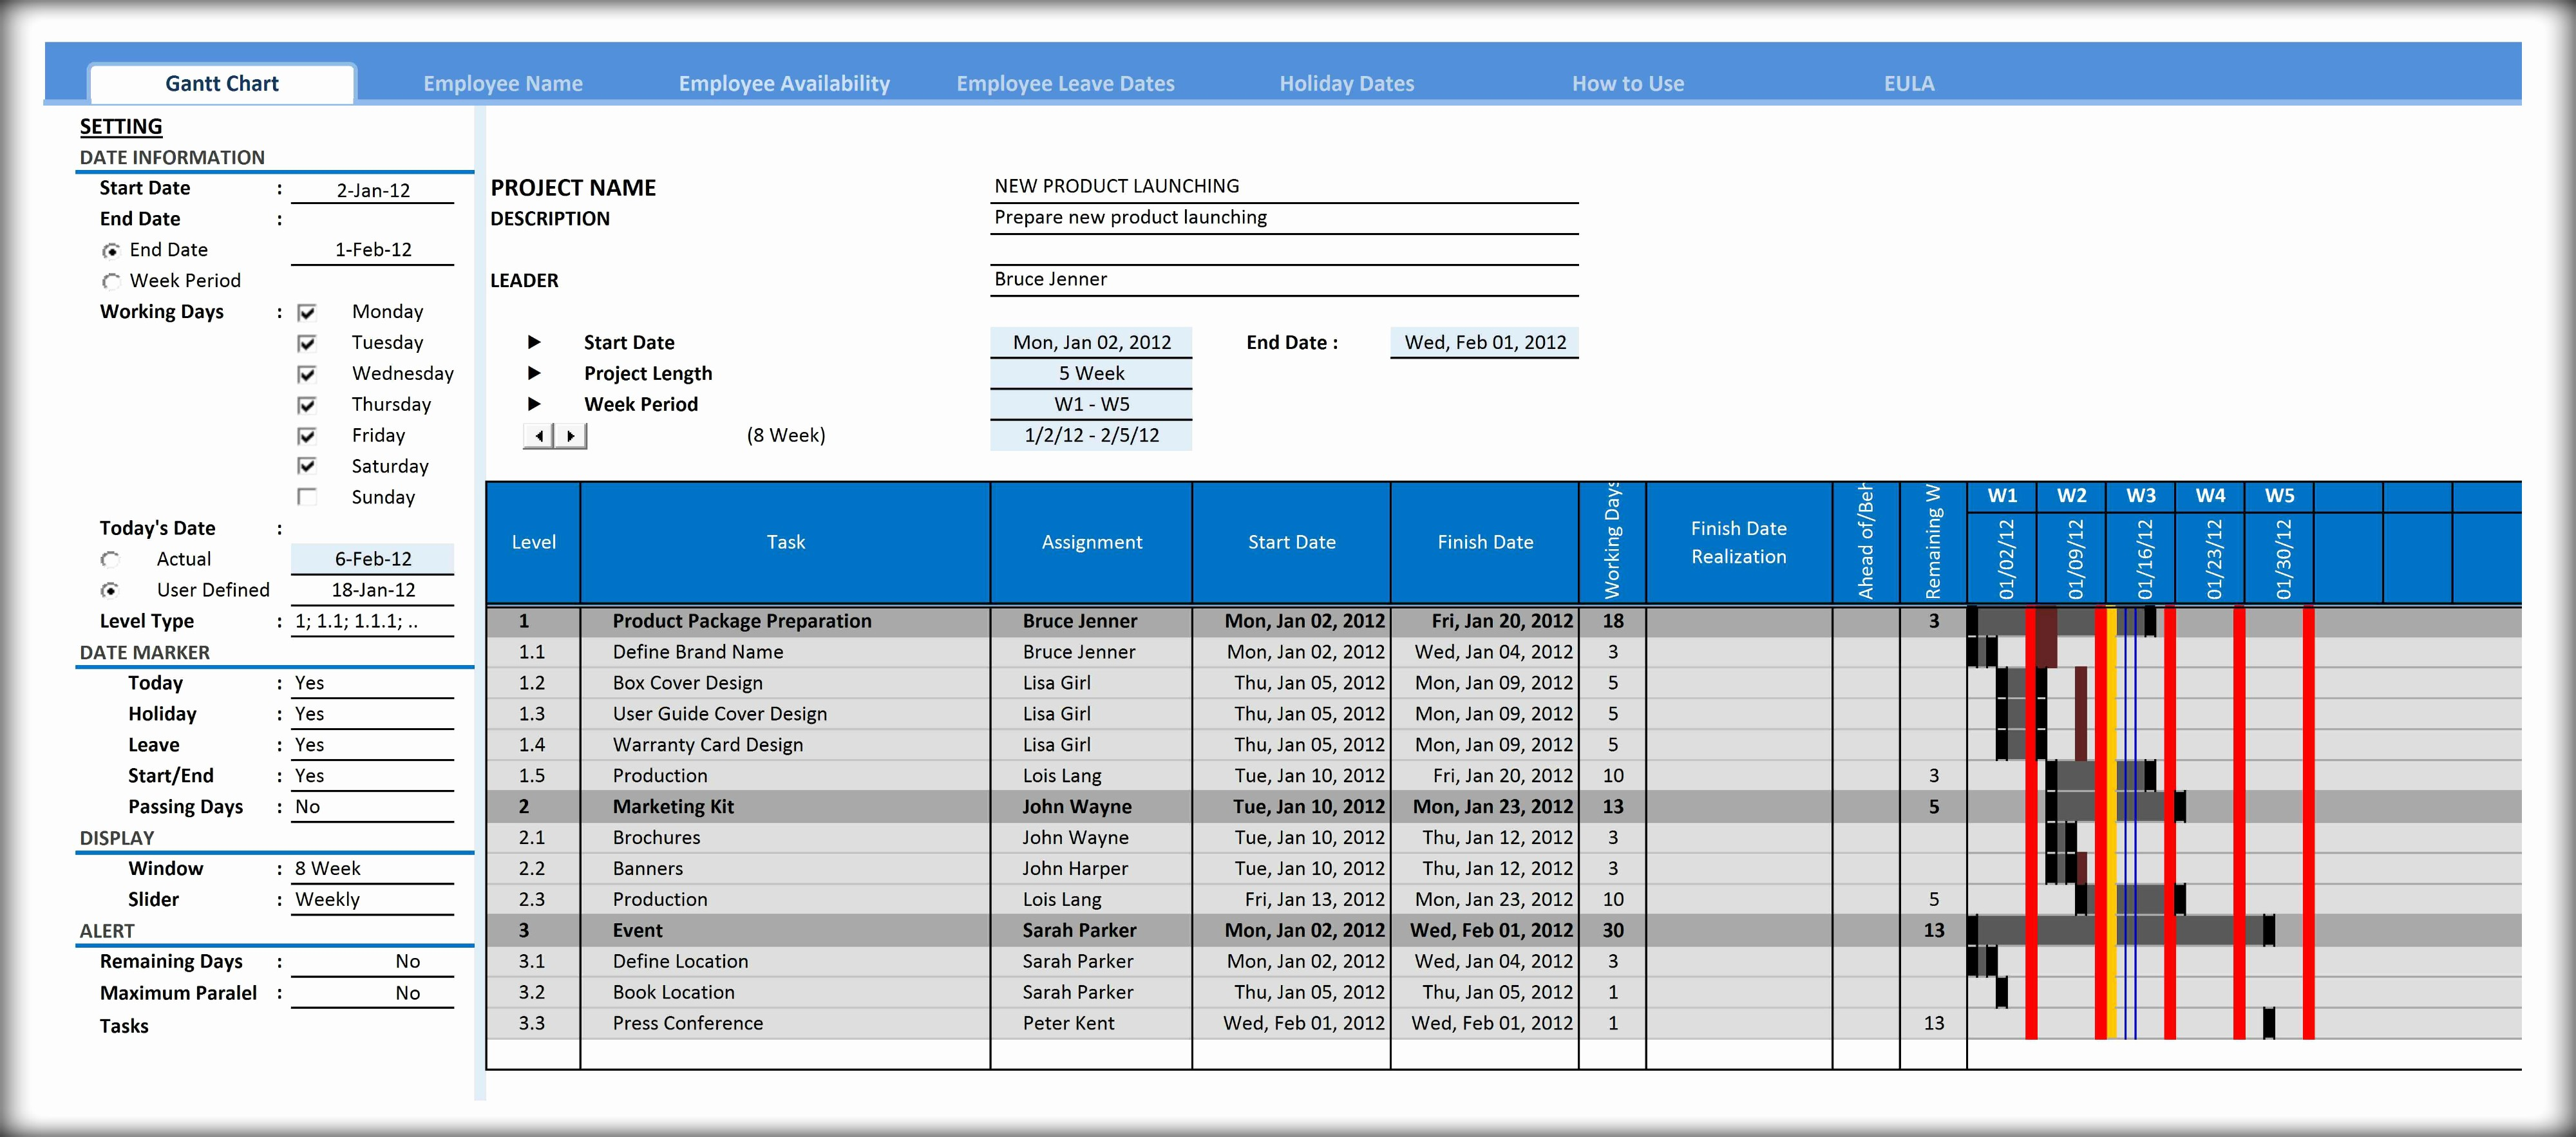 Gantt Chart Template for Excel Lovely Gantt Chart Template for Excel Excelindo